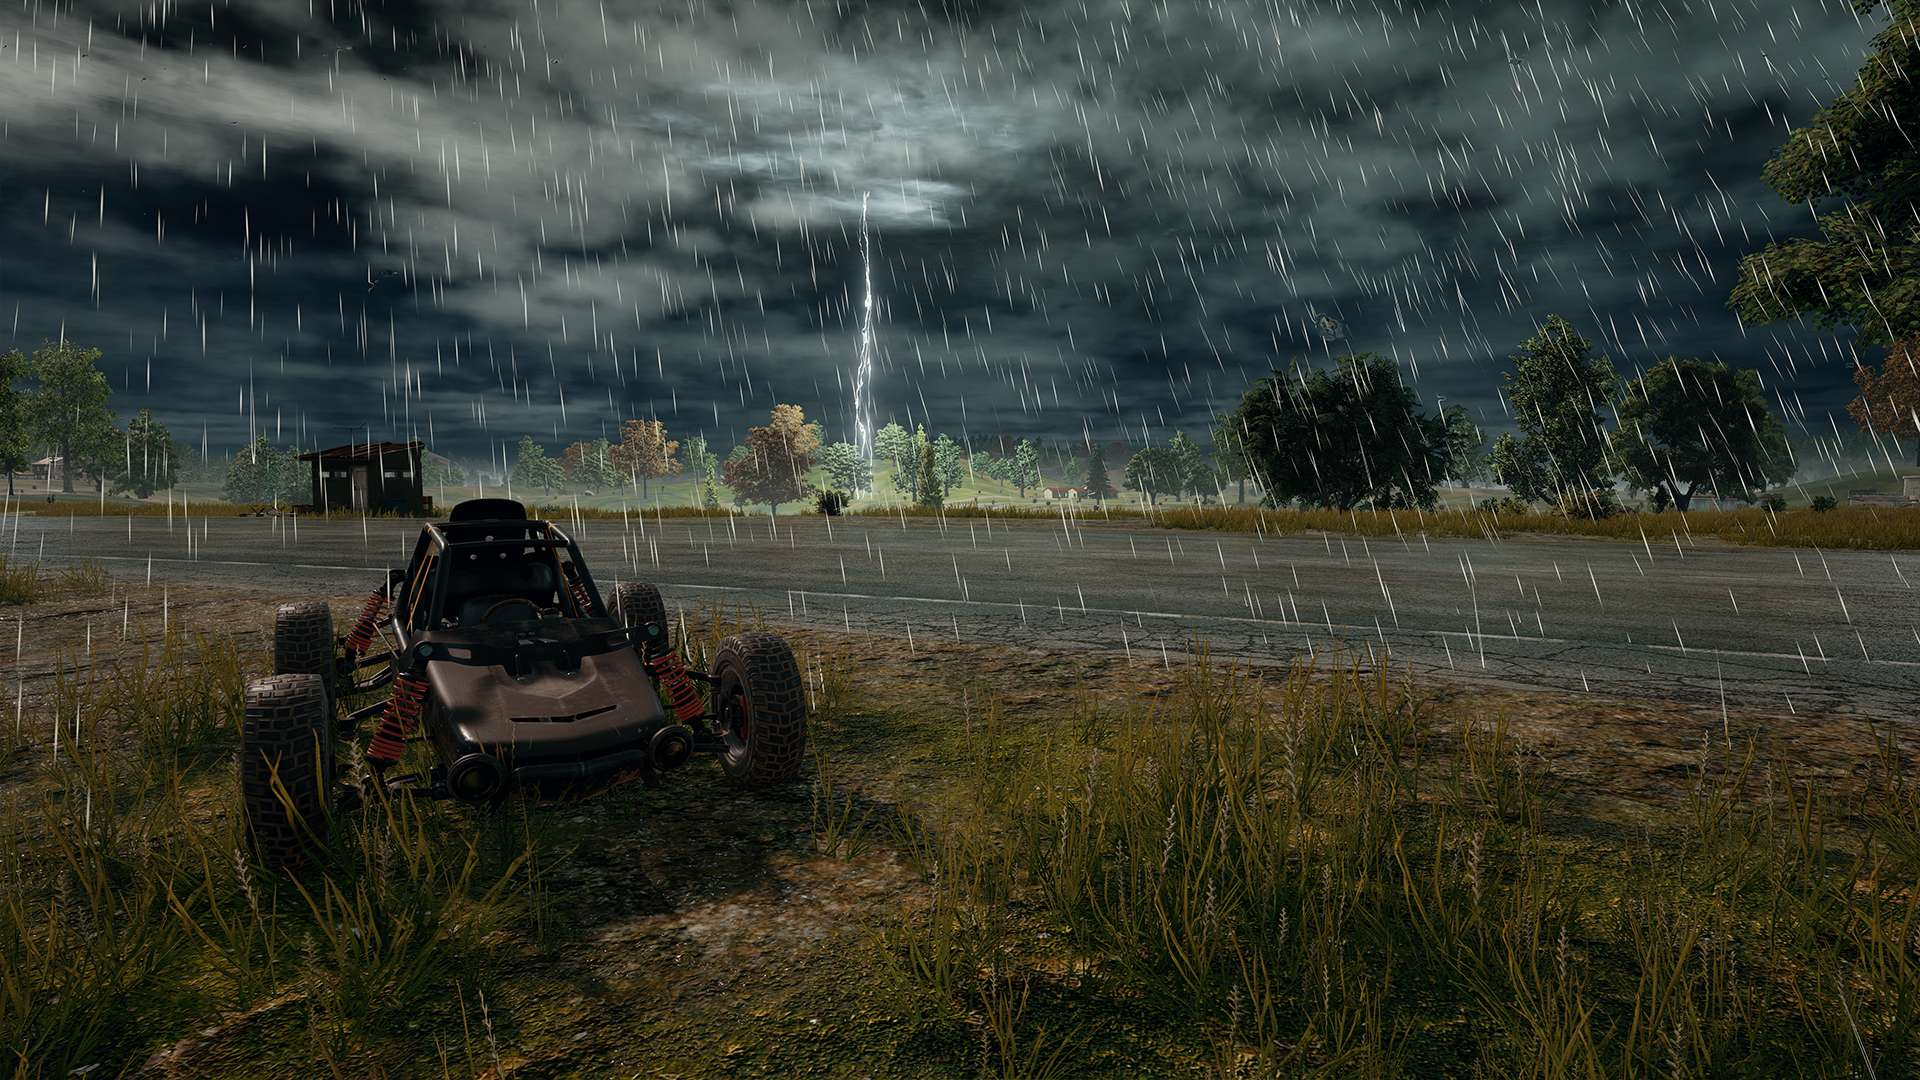 Pubg Wallpaper Phone: PUBG Wallpaper 07